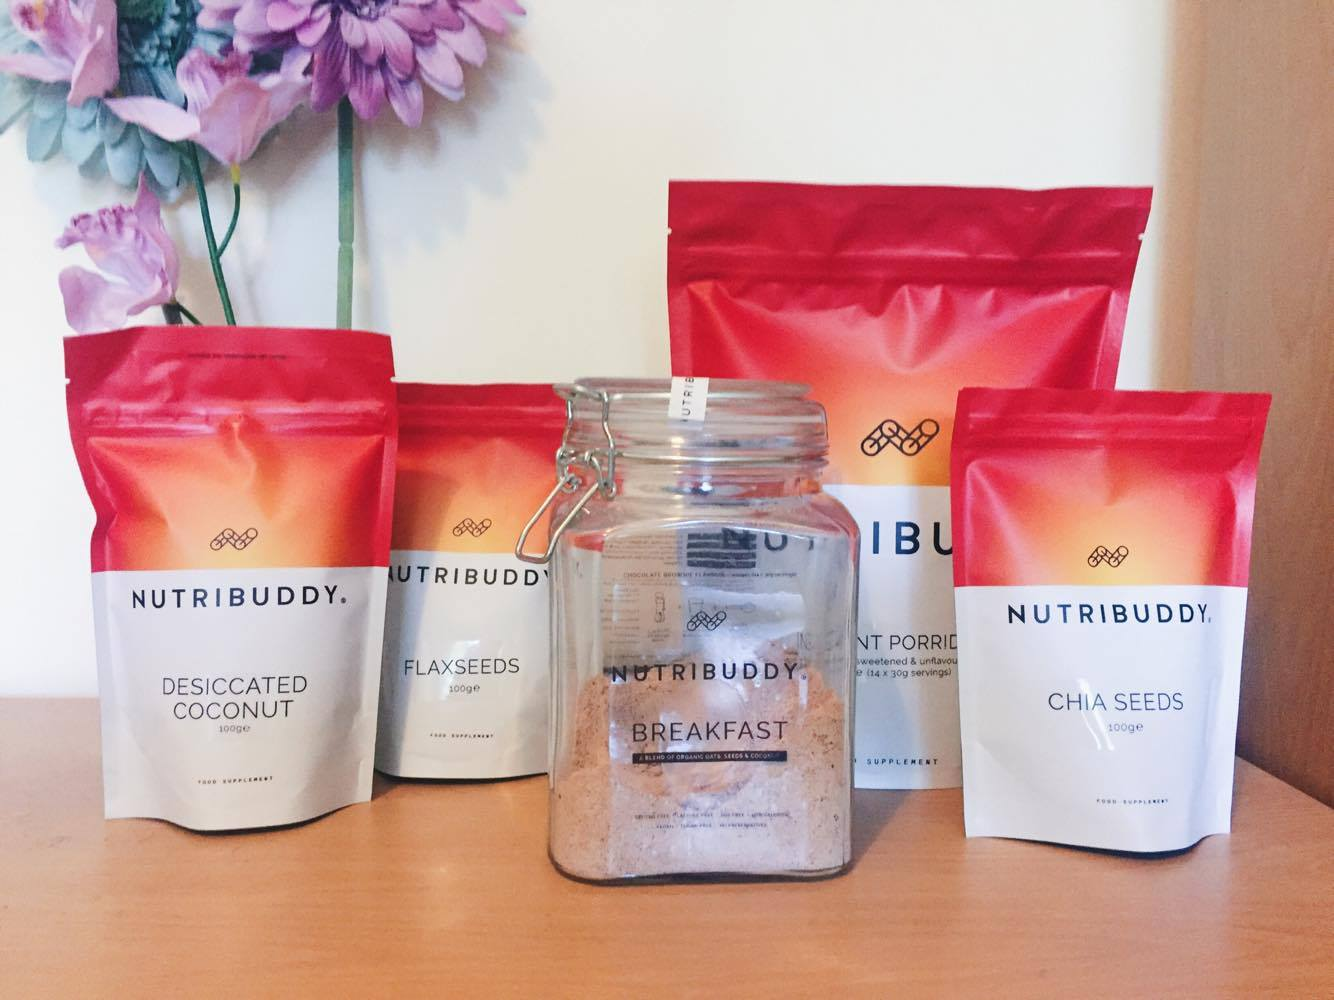 nutribuddy breakfast kit